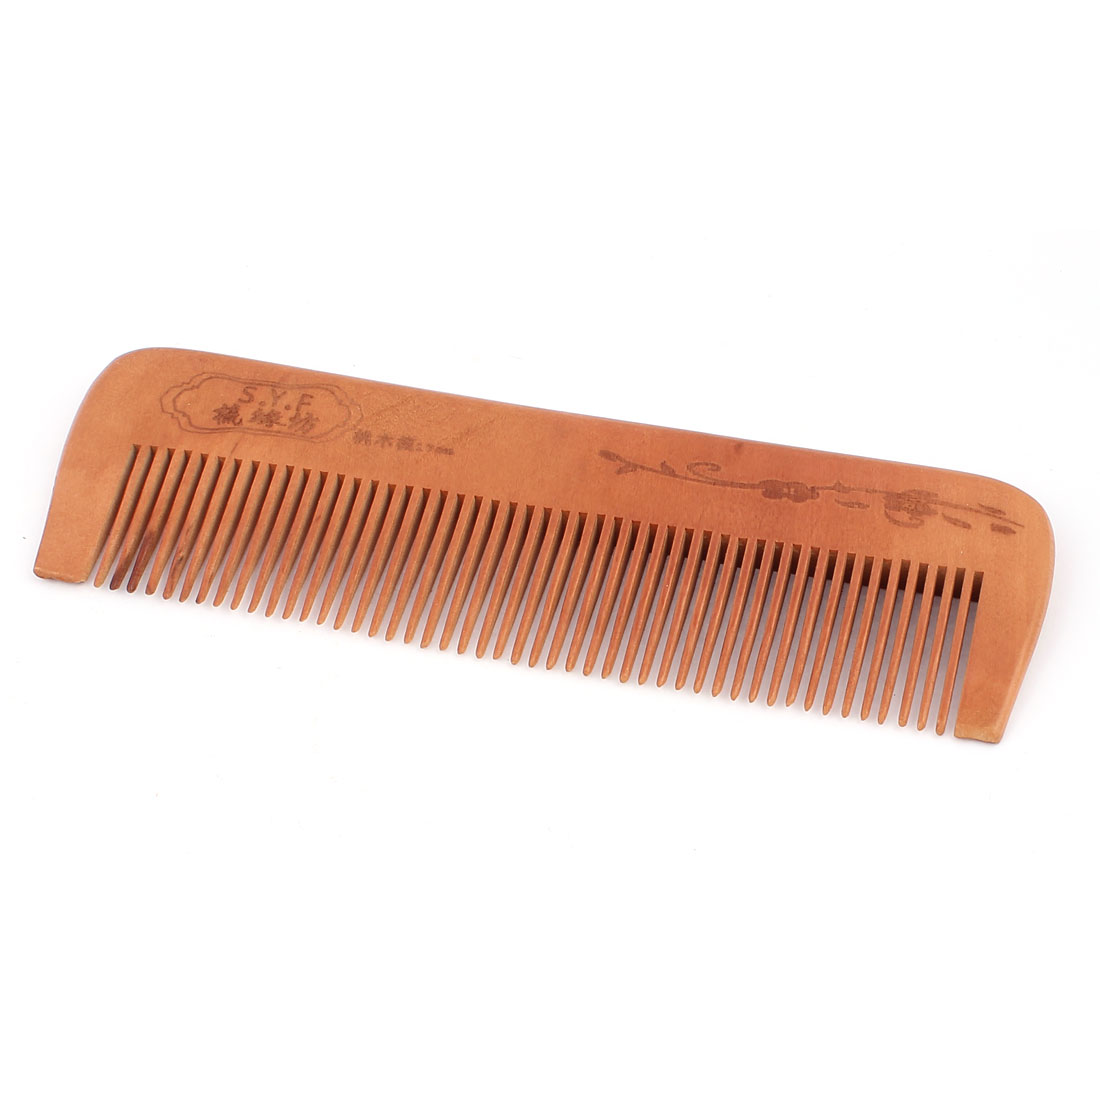 Wooden Natural Comb Head Hair Care Hand Craft Wood Color